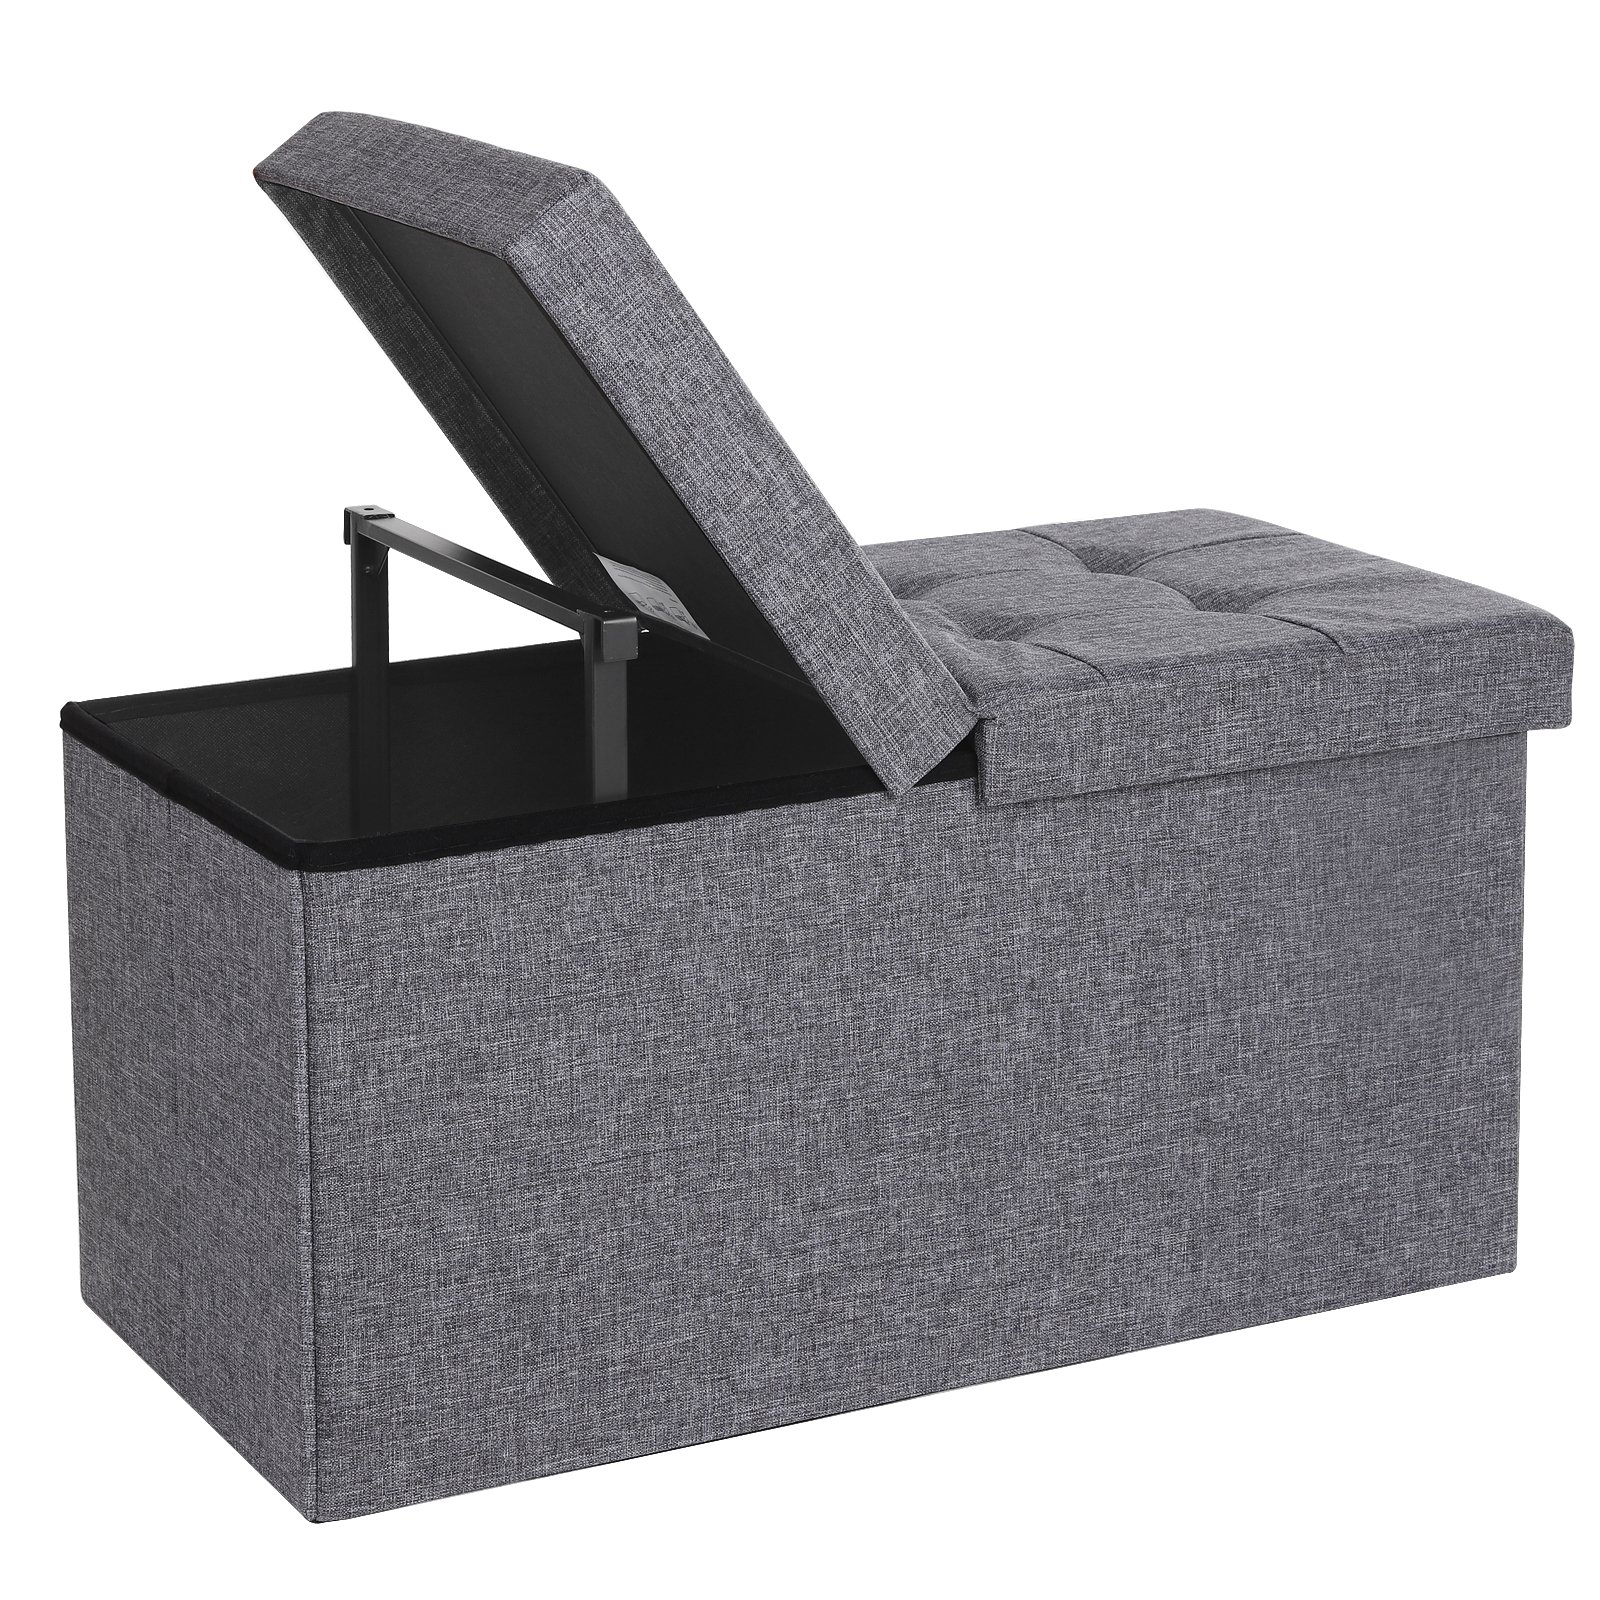 SONGMICS 30'' L Fabric Storage Ottoman Bench with Lift Top, Storage Chest Foot Rest Stool, Dark Grey ULSF40H